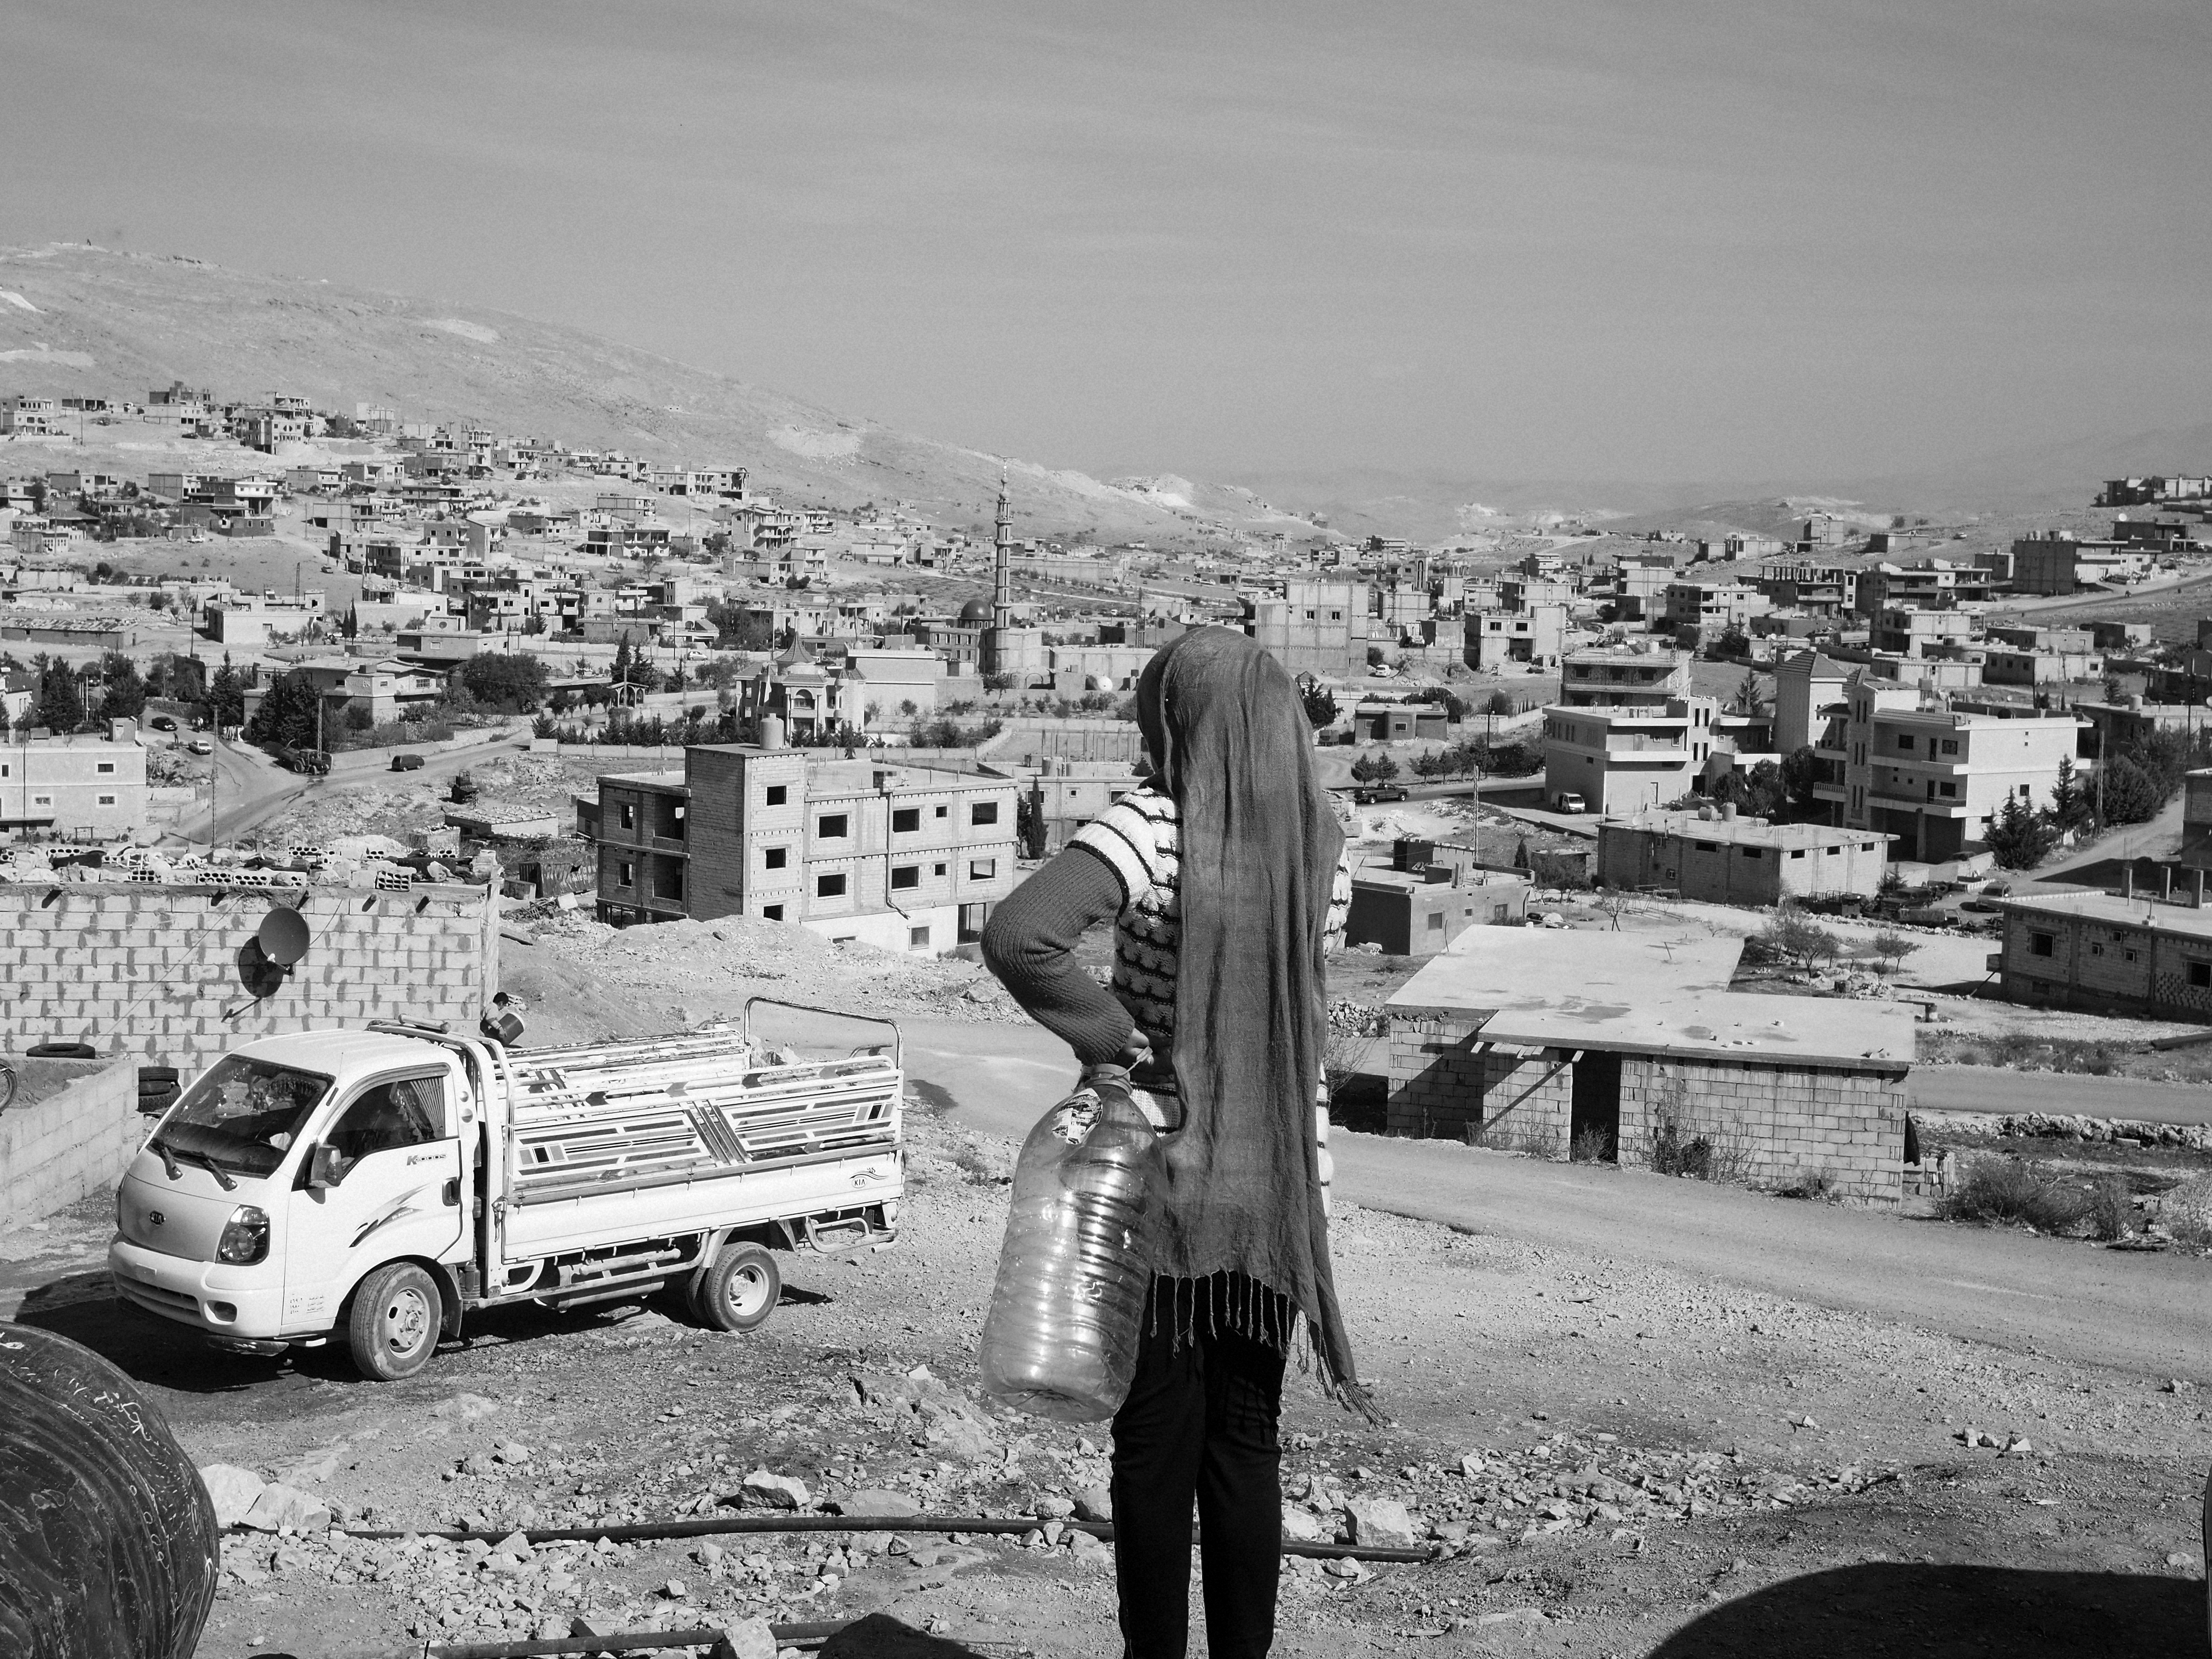 A Syrian refugee on her way to fetch drinking water in the village of Arsal, Lebanon.